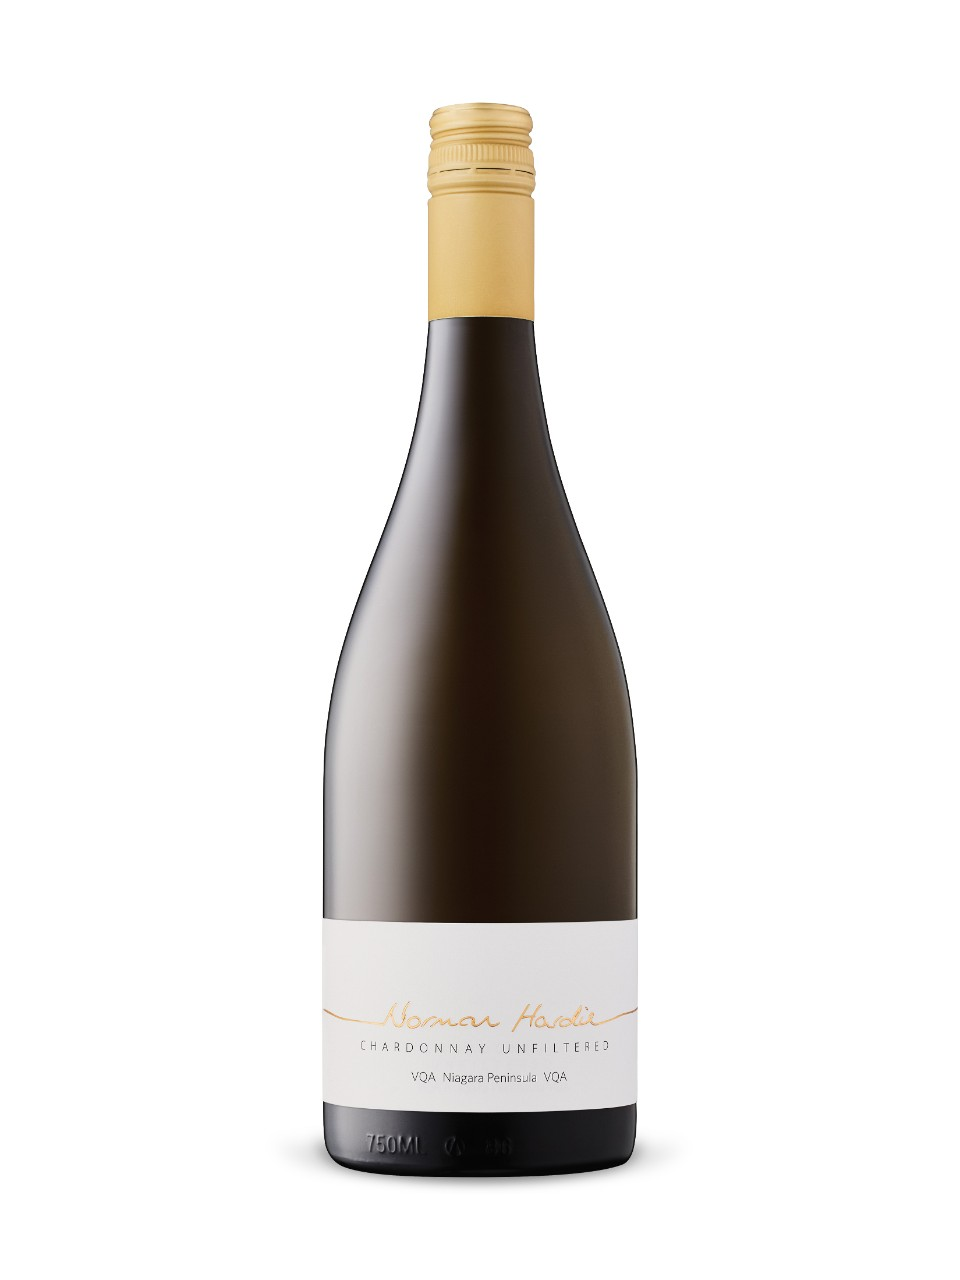 Norman Hardie Unfiltered Chardonnay